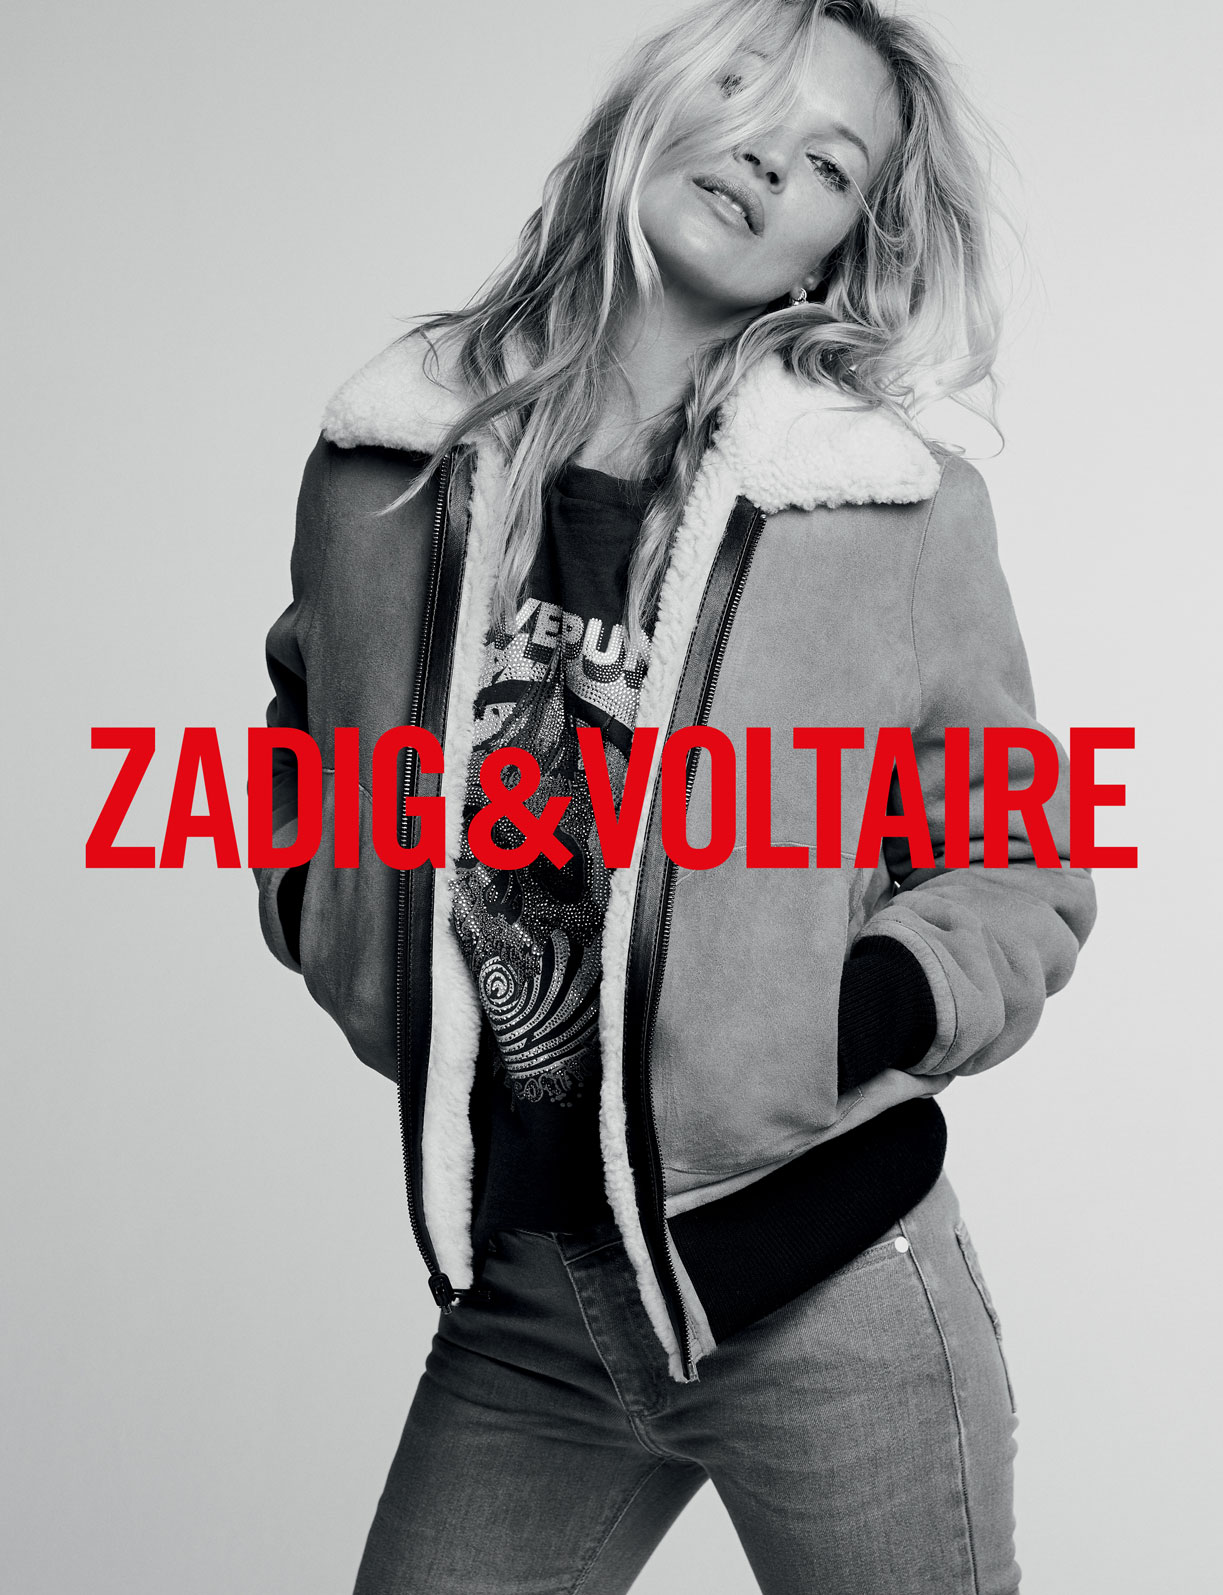 Topmoderne The New Muse - Kate Moss for Zadig & Voltaire - THE FALL JU-53